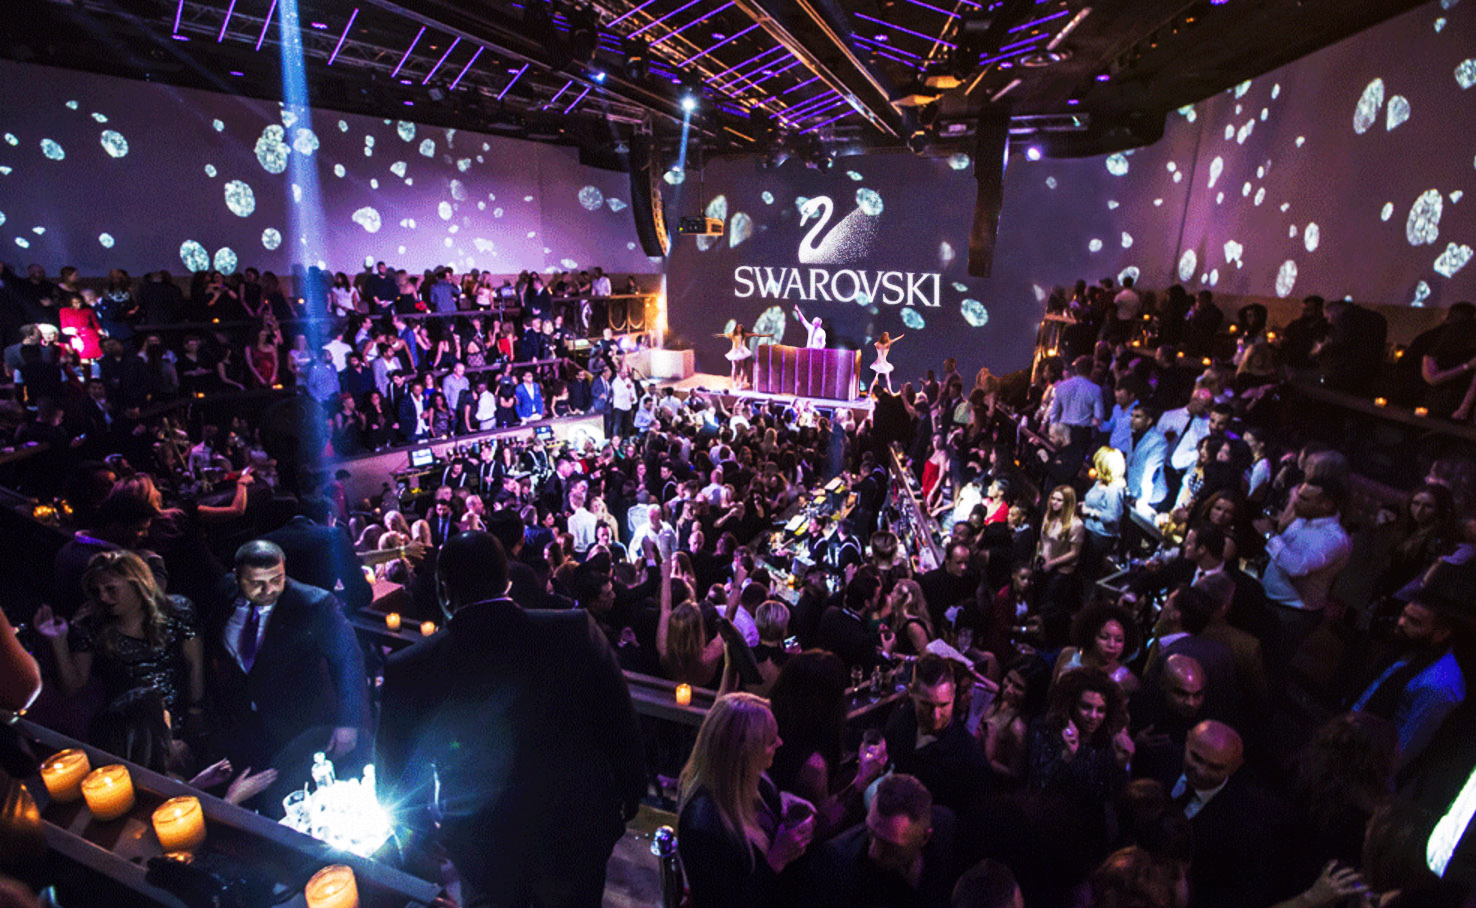 MannCG was chosen to design and produce an immersive environment for a new nightclub in Rotterdam. It features music by dutch DJs accompanied by visuals and acrobatic performances. MannCG's team of media artists designed a large repertoire of visual environments, so that every visit to the club is different and unique. They also developed custom graphic environments for a Dinner show and various artists performances. MannCG created dynamic sets of visuals for 360 surround projection walls and movable stage screen.